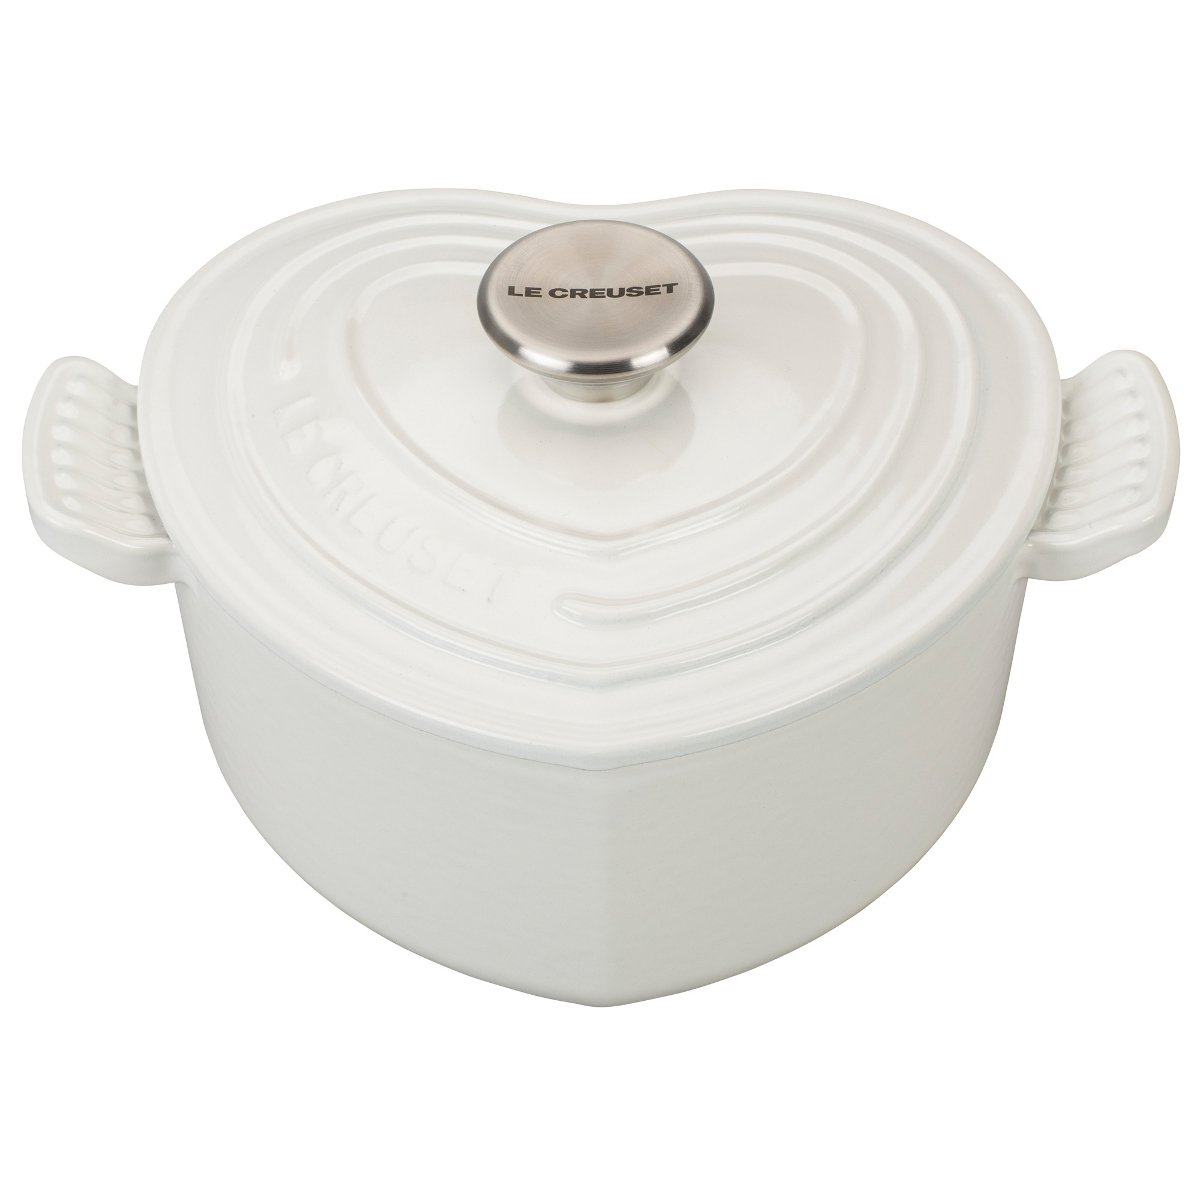 Le Creuset L25C1-0216S Signature Cast Iron Heart Shaped Dutch Oven With Stainless Steel Knob 2.25 quart White